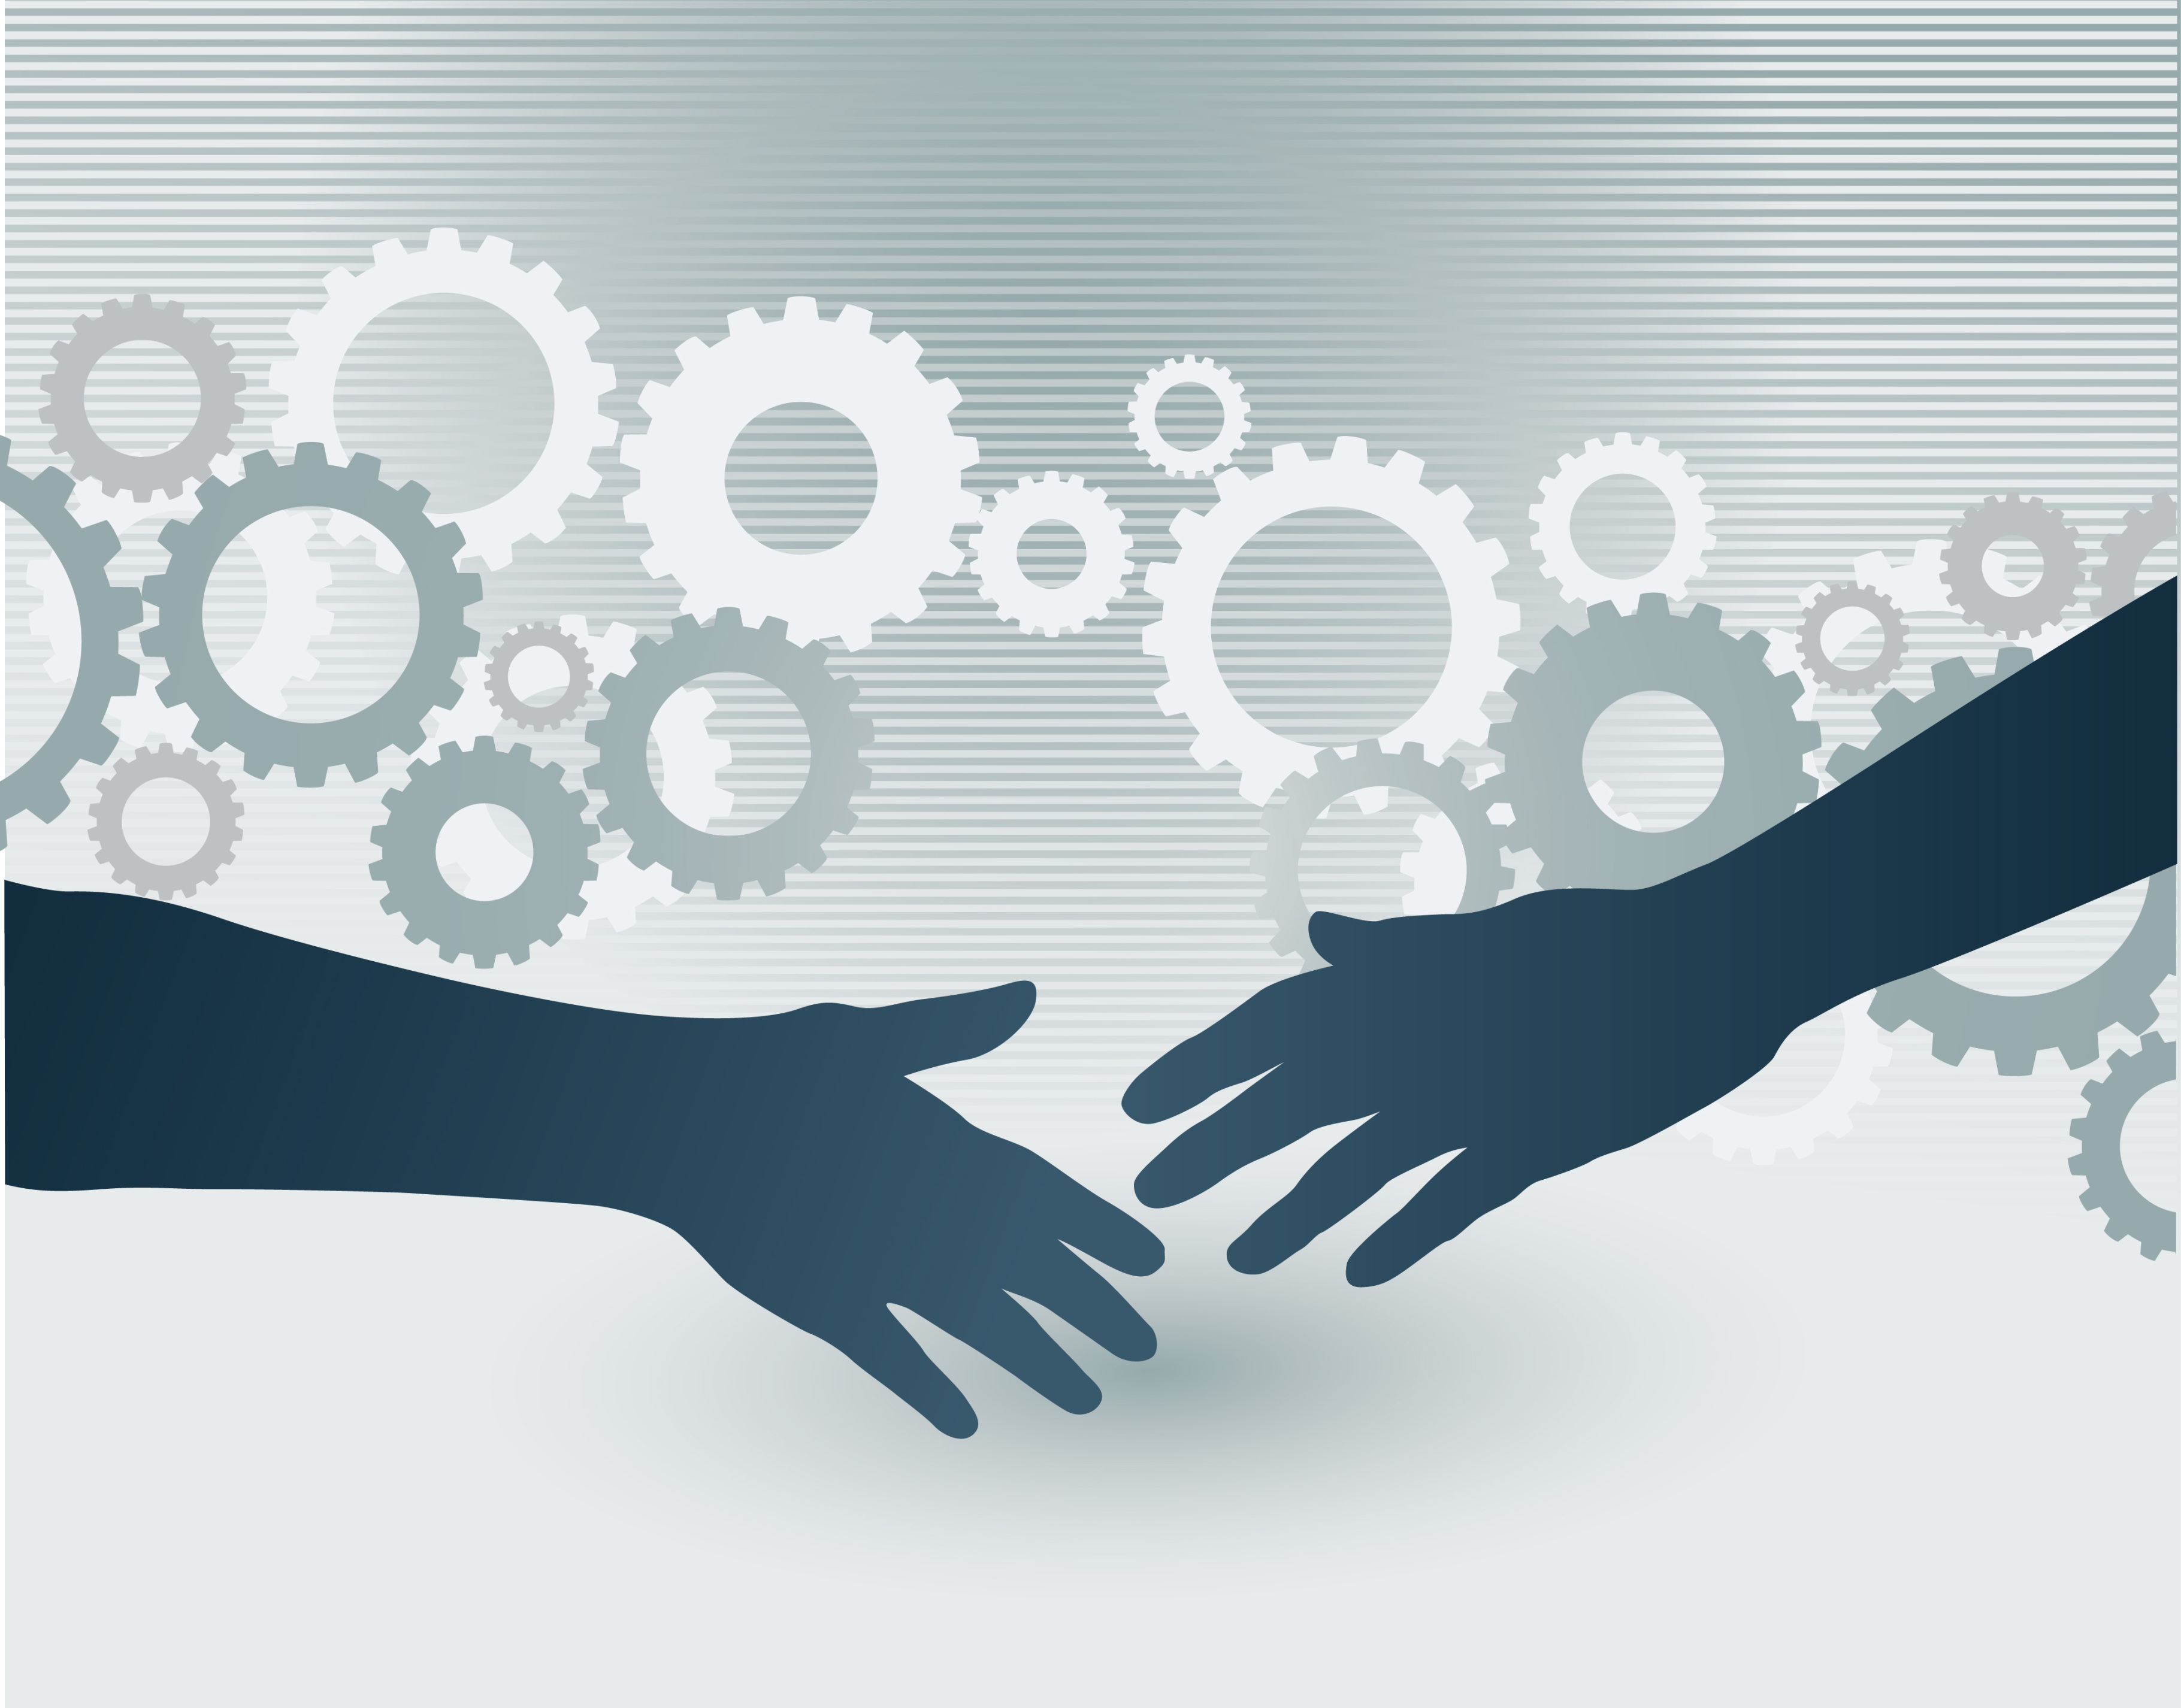 b4b how technology and big data are reinventing the customer supplier relationship